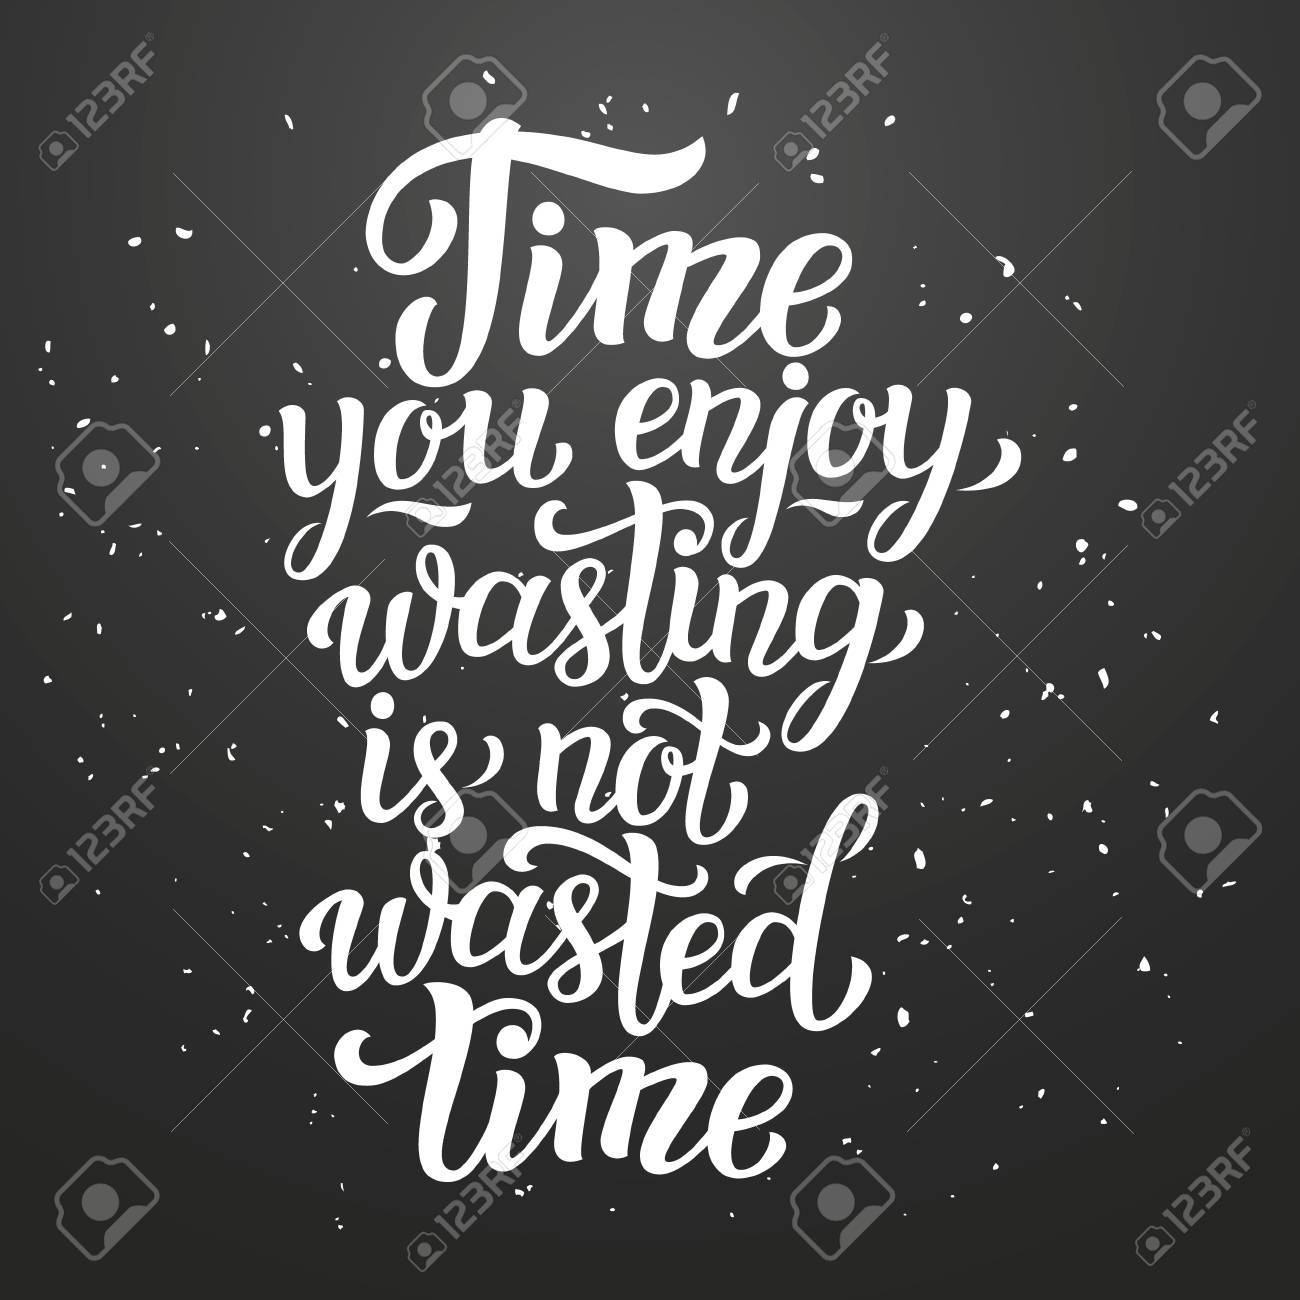 Time You Enjoy Wasting Is Not Wasted Time Lettering Typography Royalty Free Cliparts Vectors And Stock Illustration Image 61407639